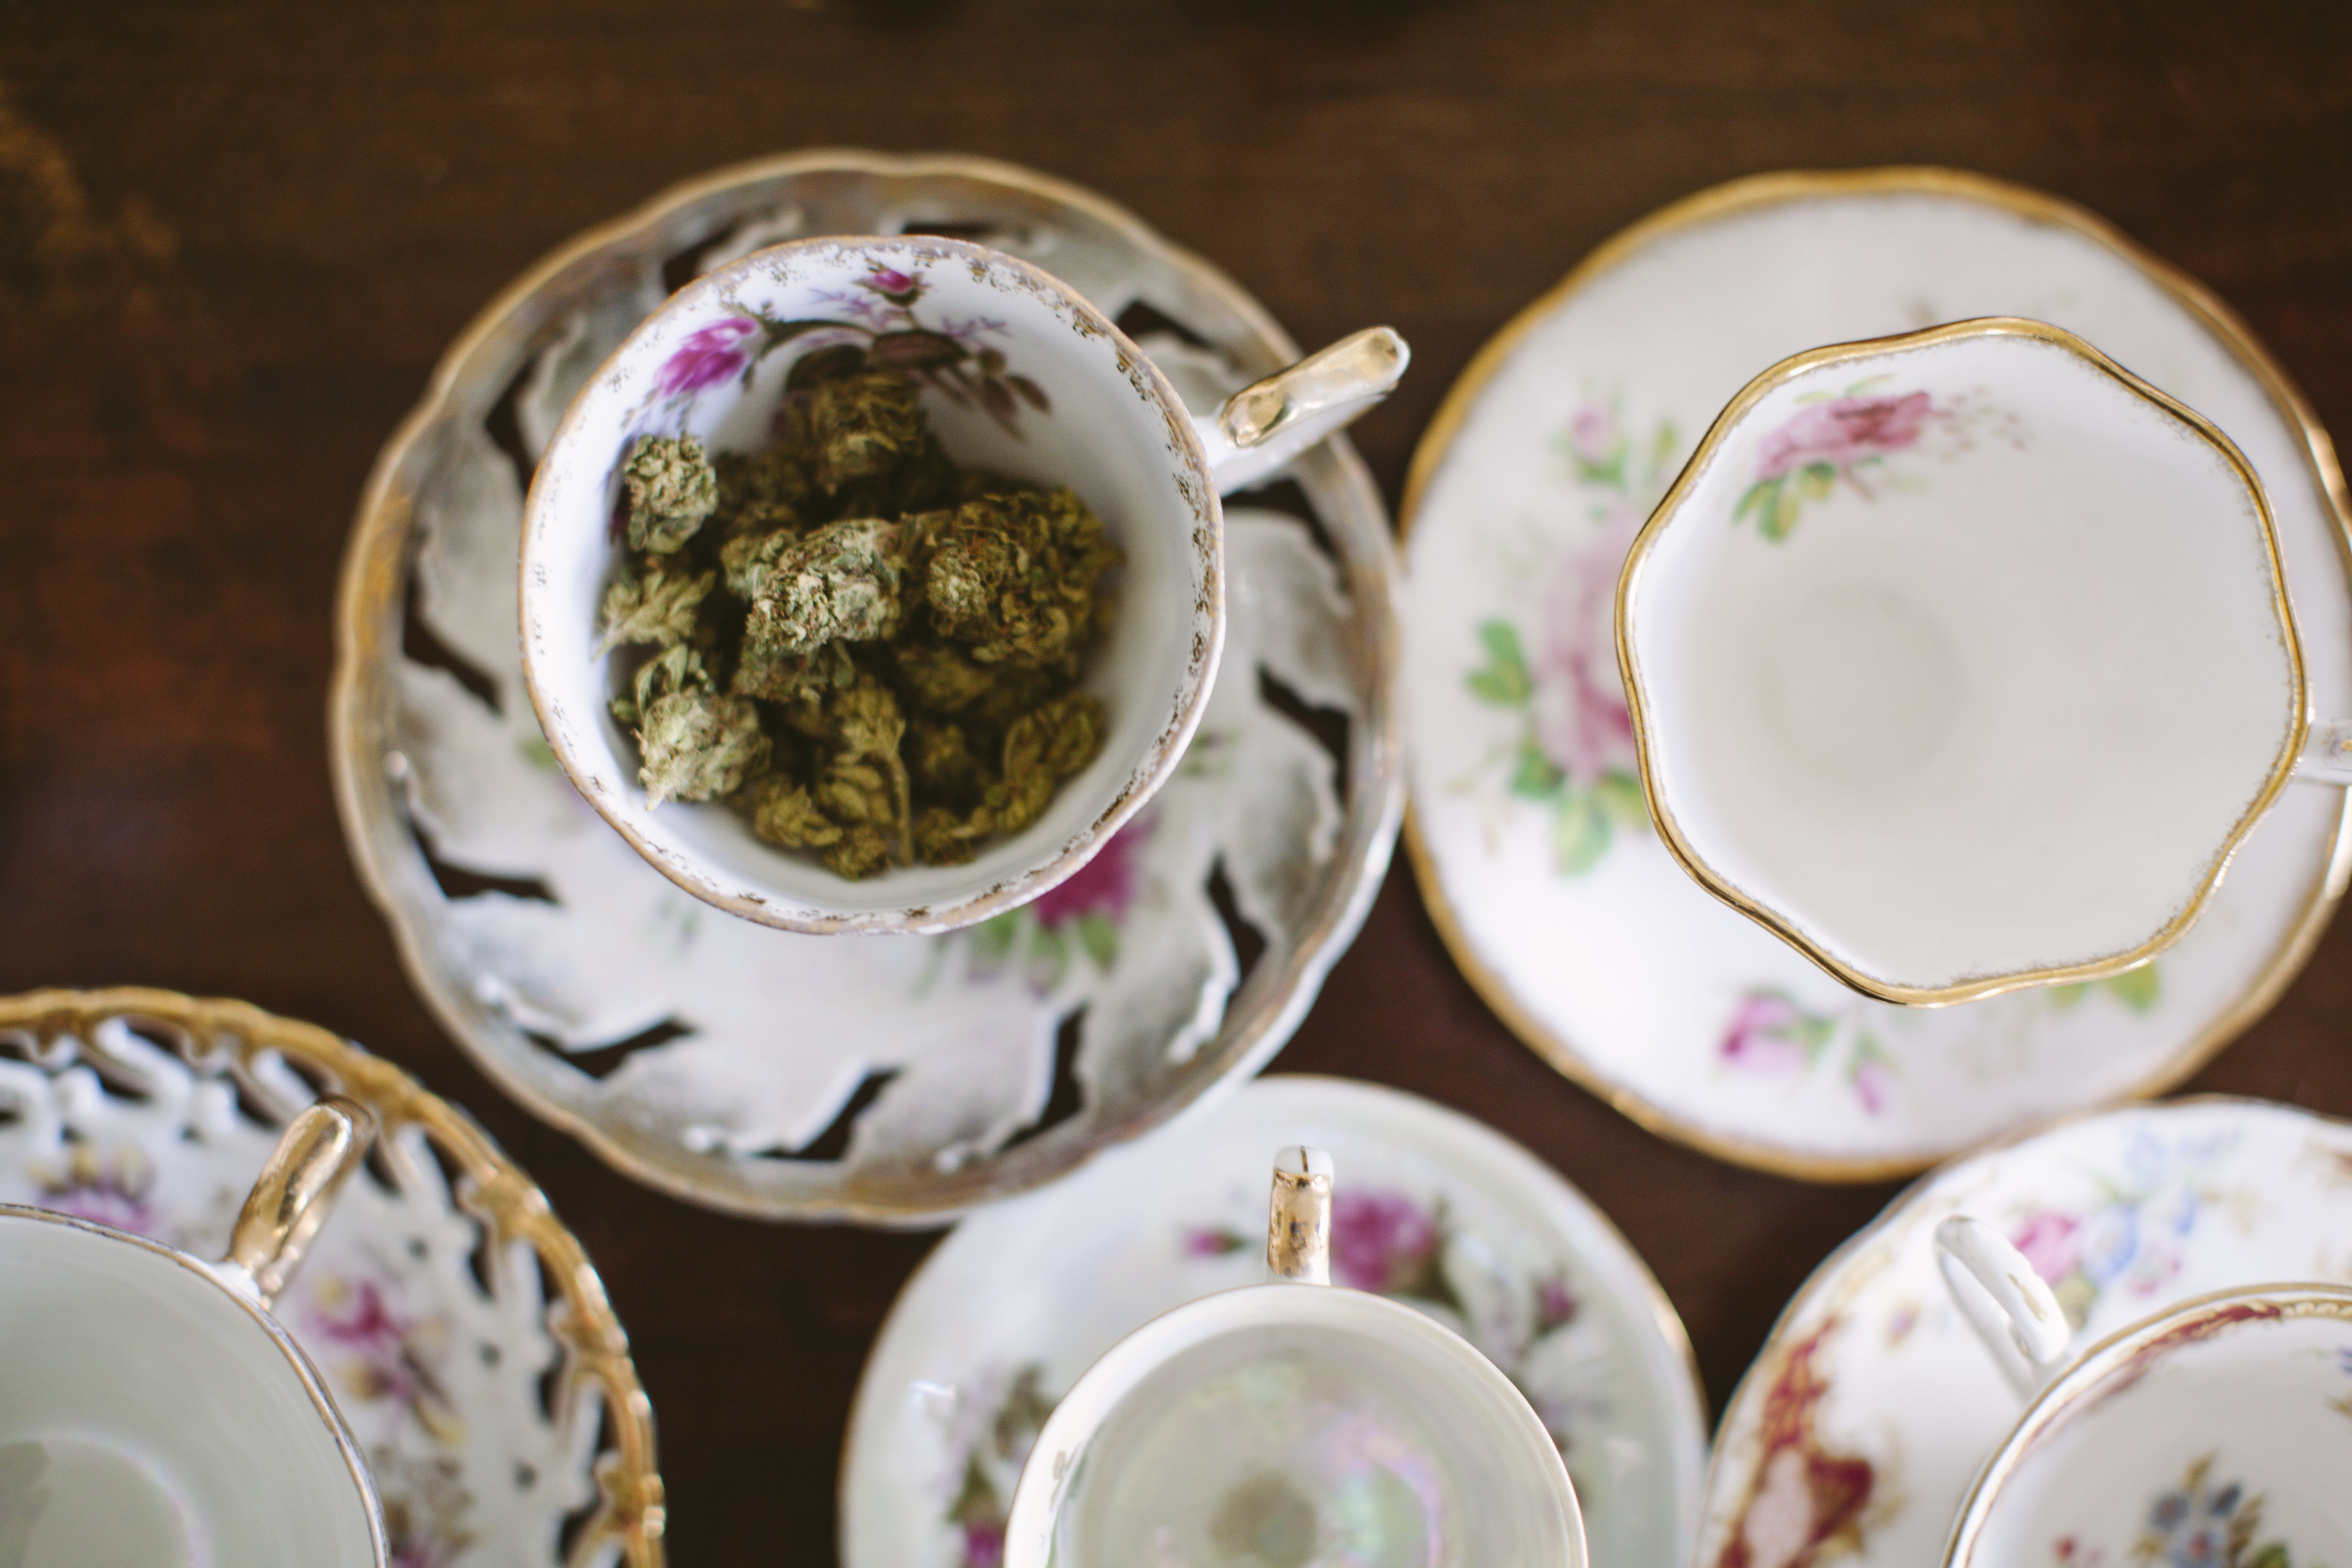 Cannabis sits inside a tea cup as someone prepares to make weed tea.